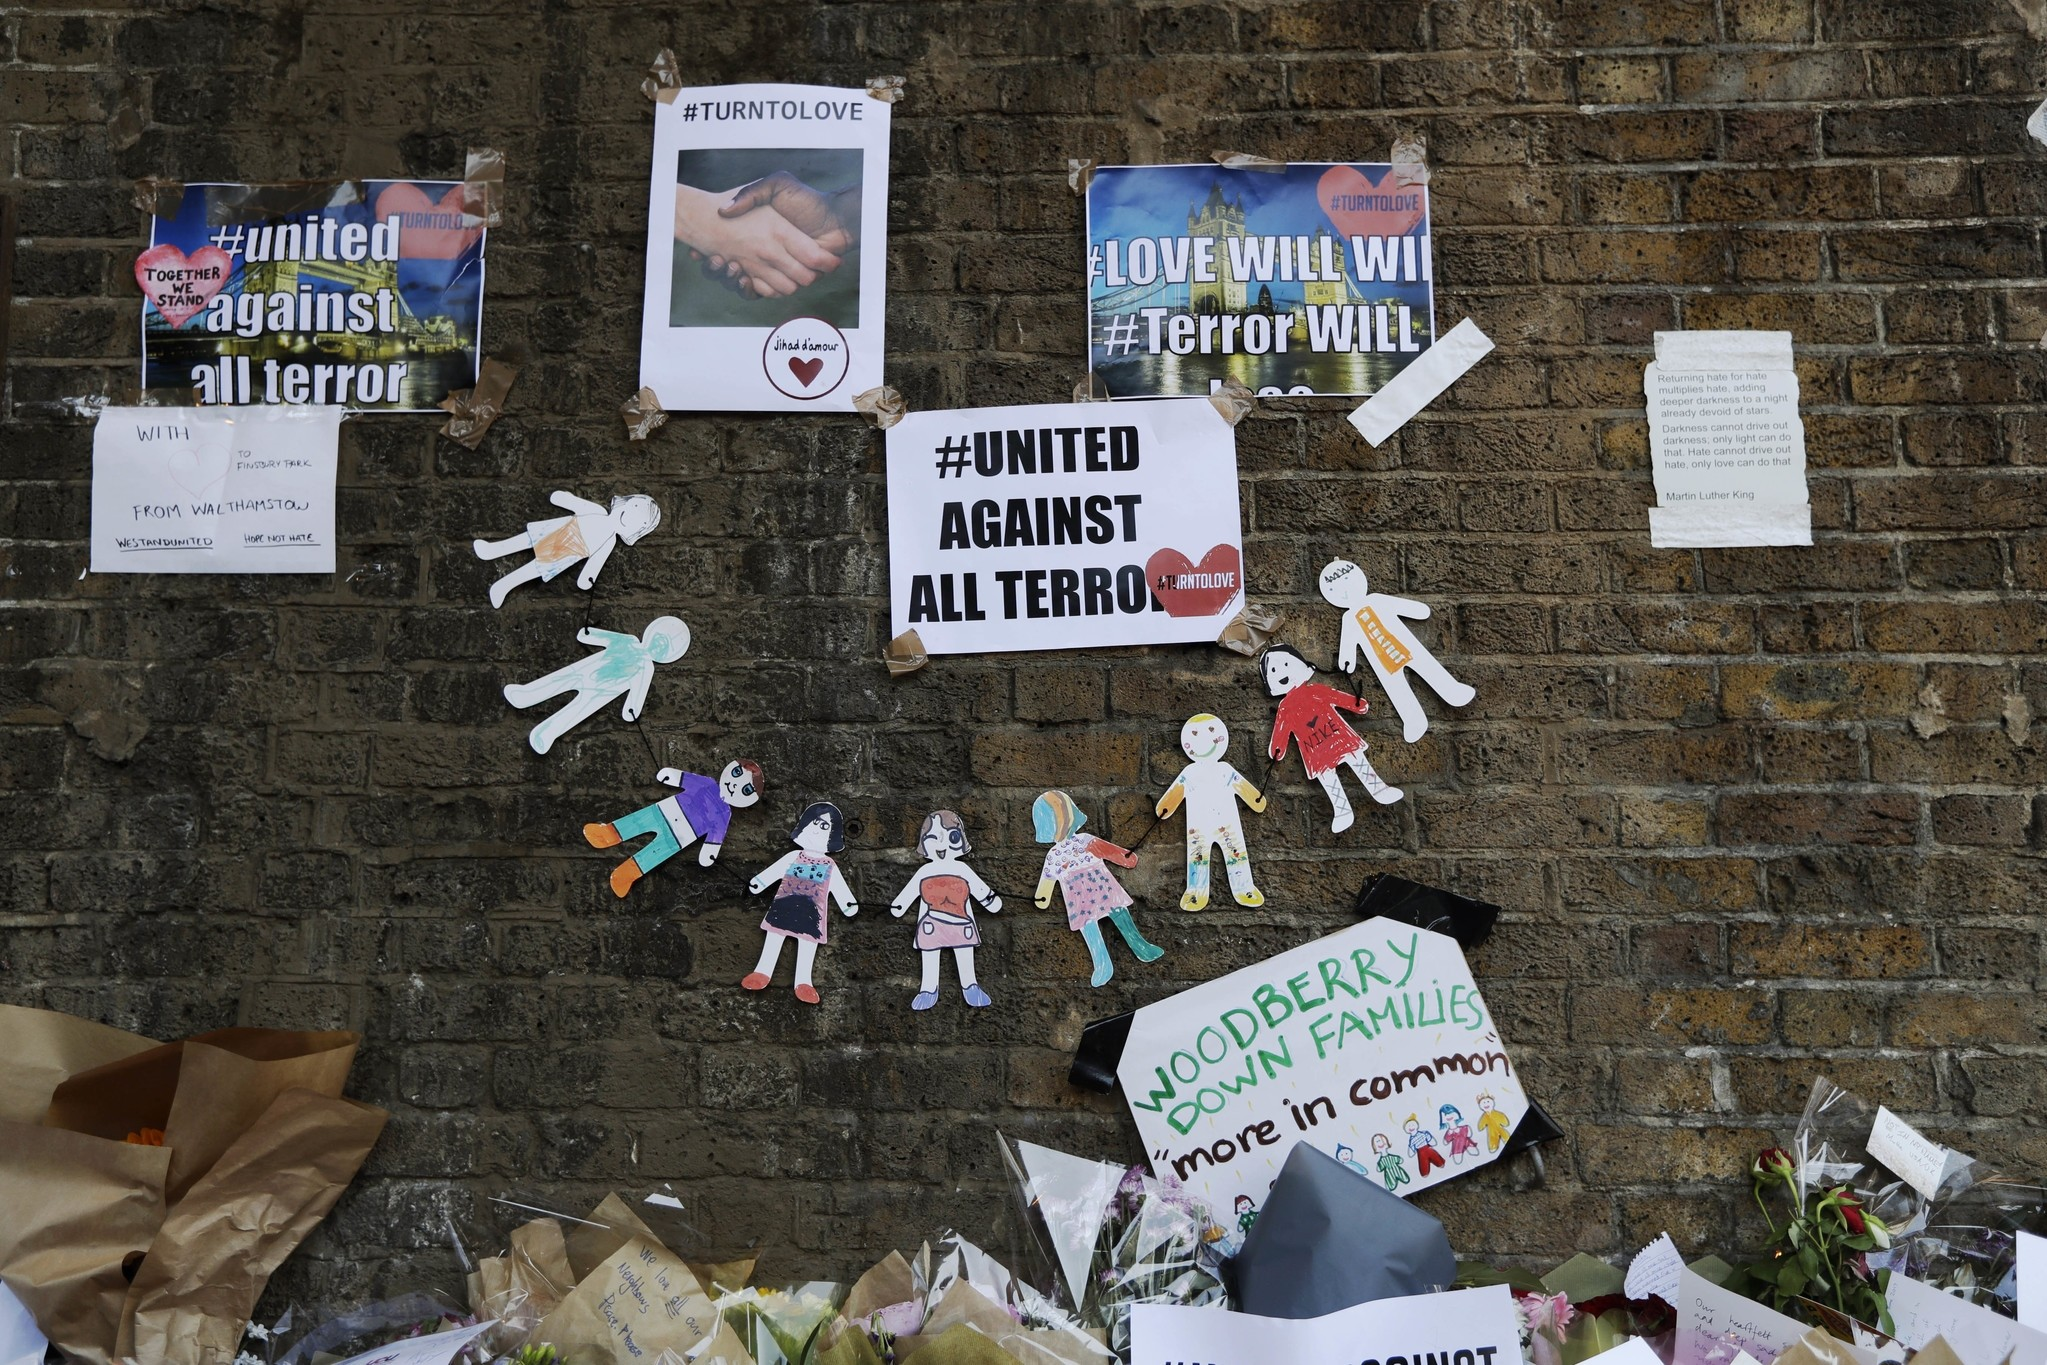 Written tributes of unity are displayed after being placed by the scene of an attack where a man drove into a group of people near a mosque early Monday morning, June 20, 2017. (AP Photo)